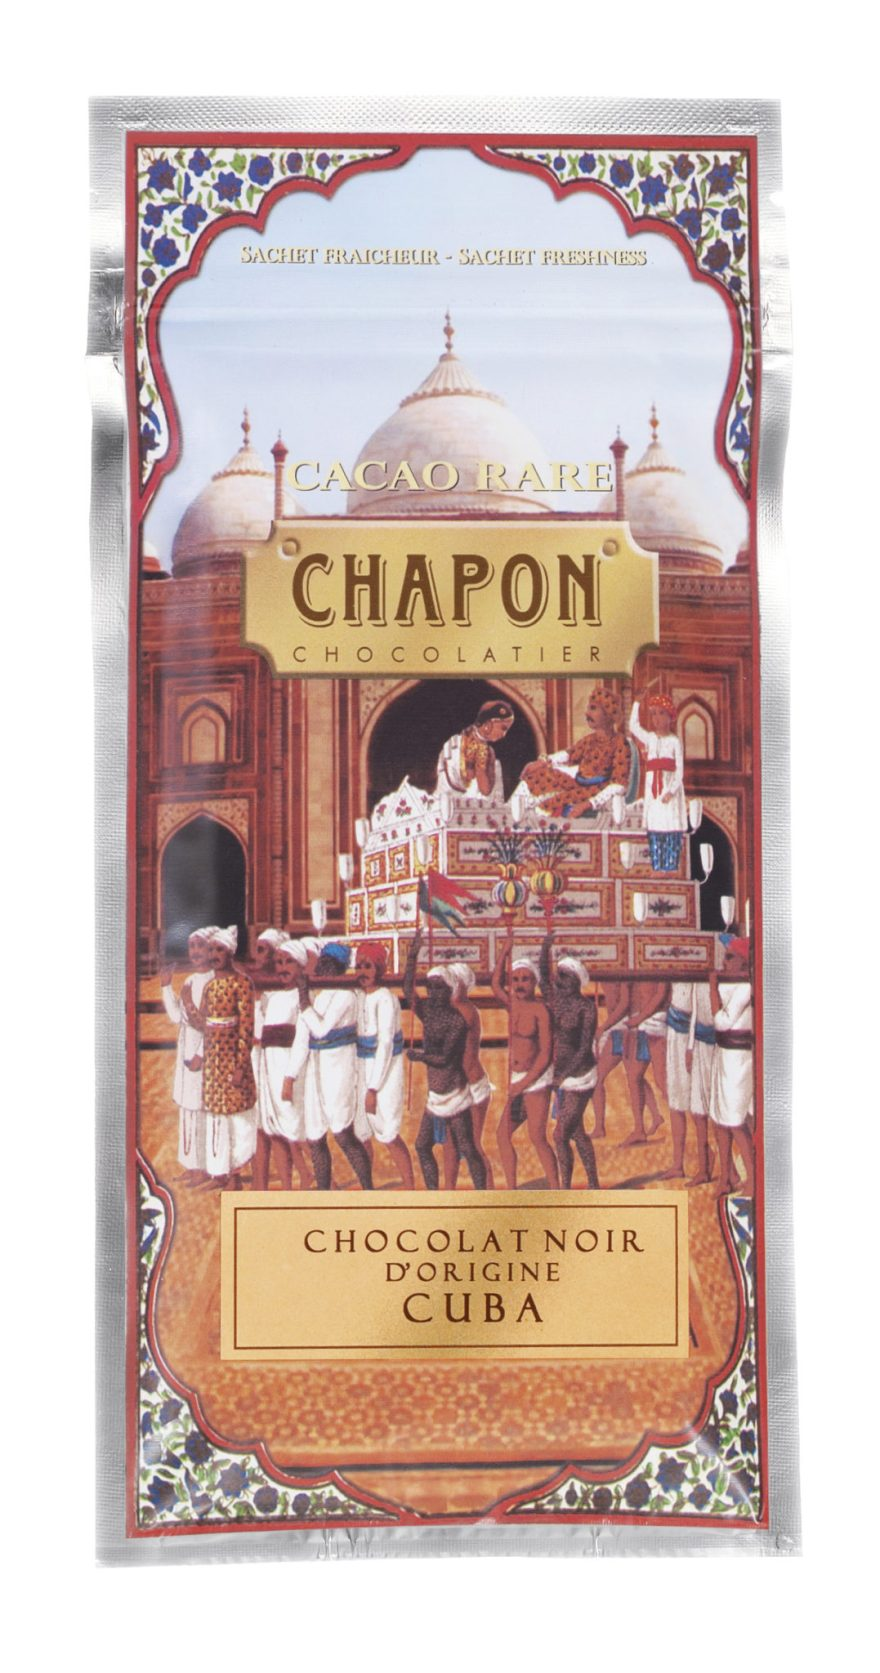 Chocolates Chapon